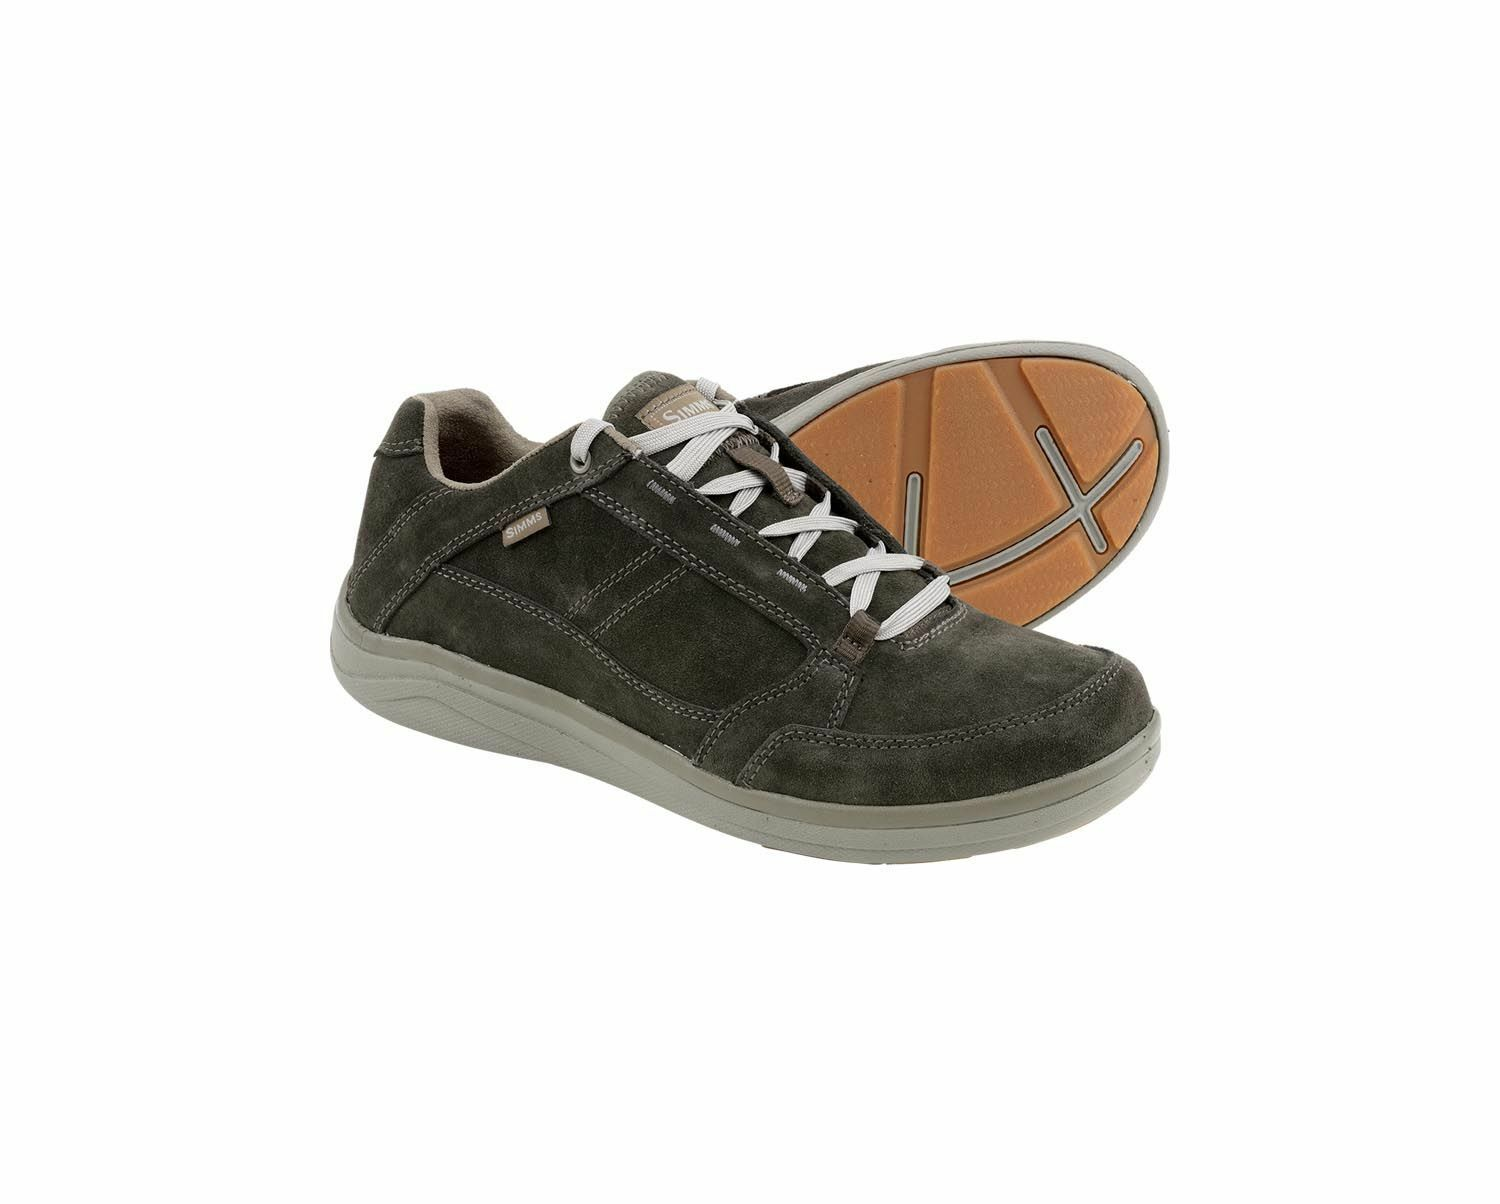 Simms Westshore Leather shoes Dark Olive - Size 11 -CLOSEOUT